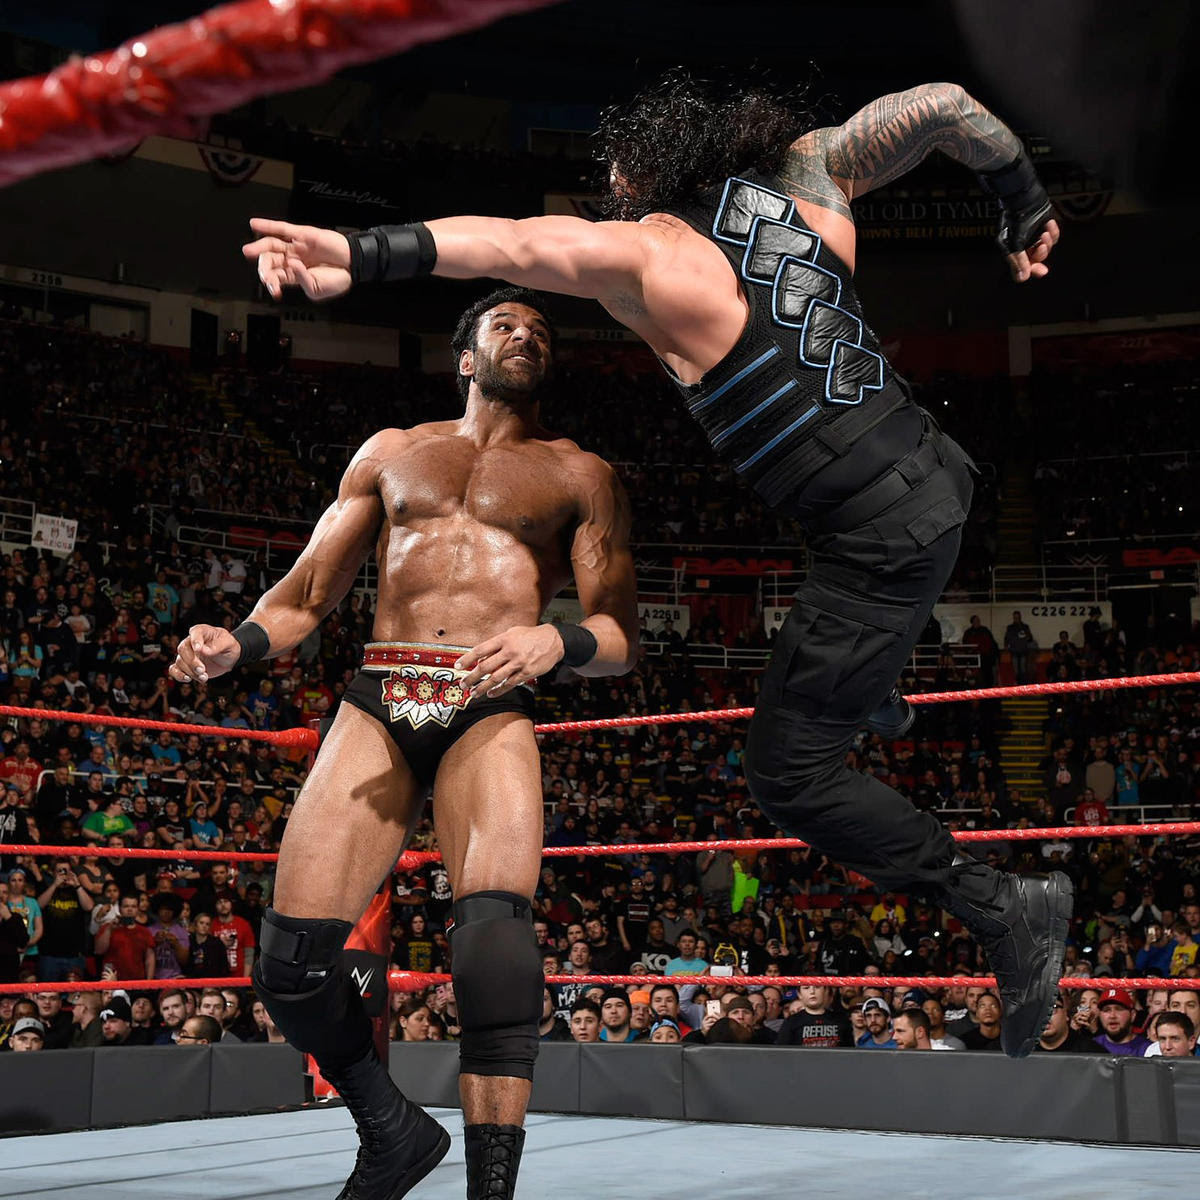 Reigns leaps into the air to deliver a devastating Superman Punch to Mahal.